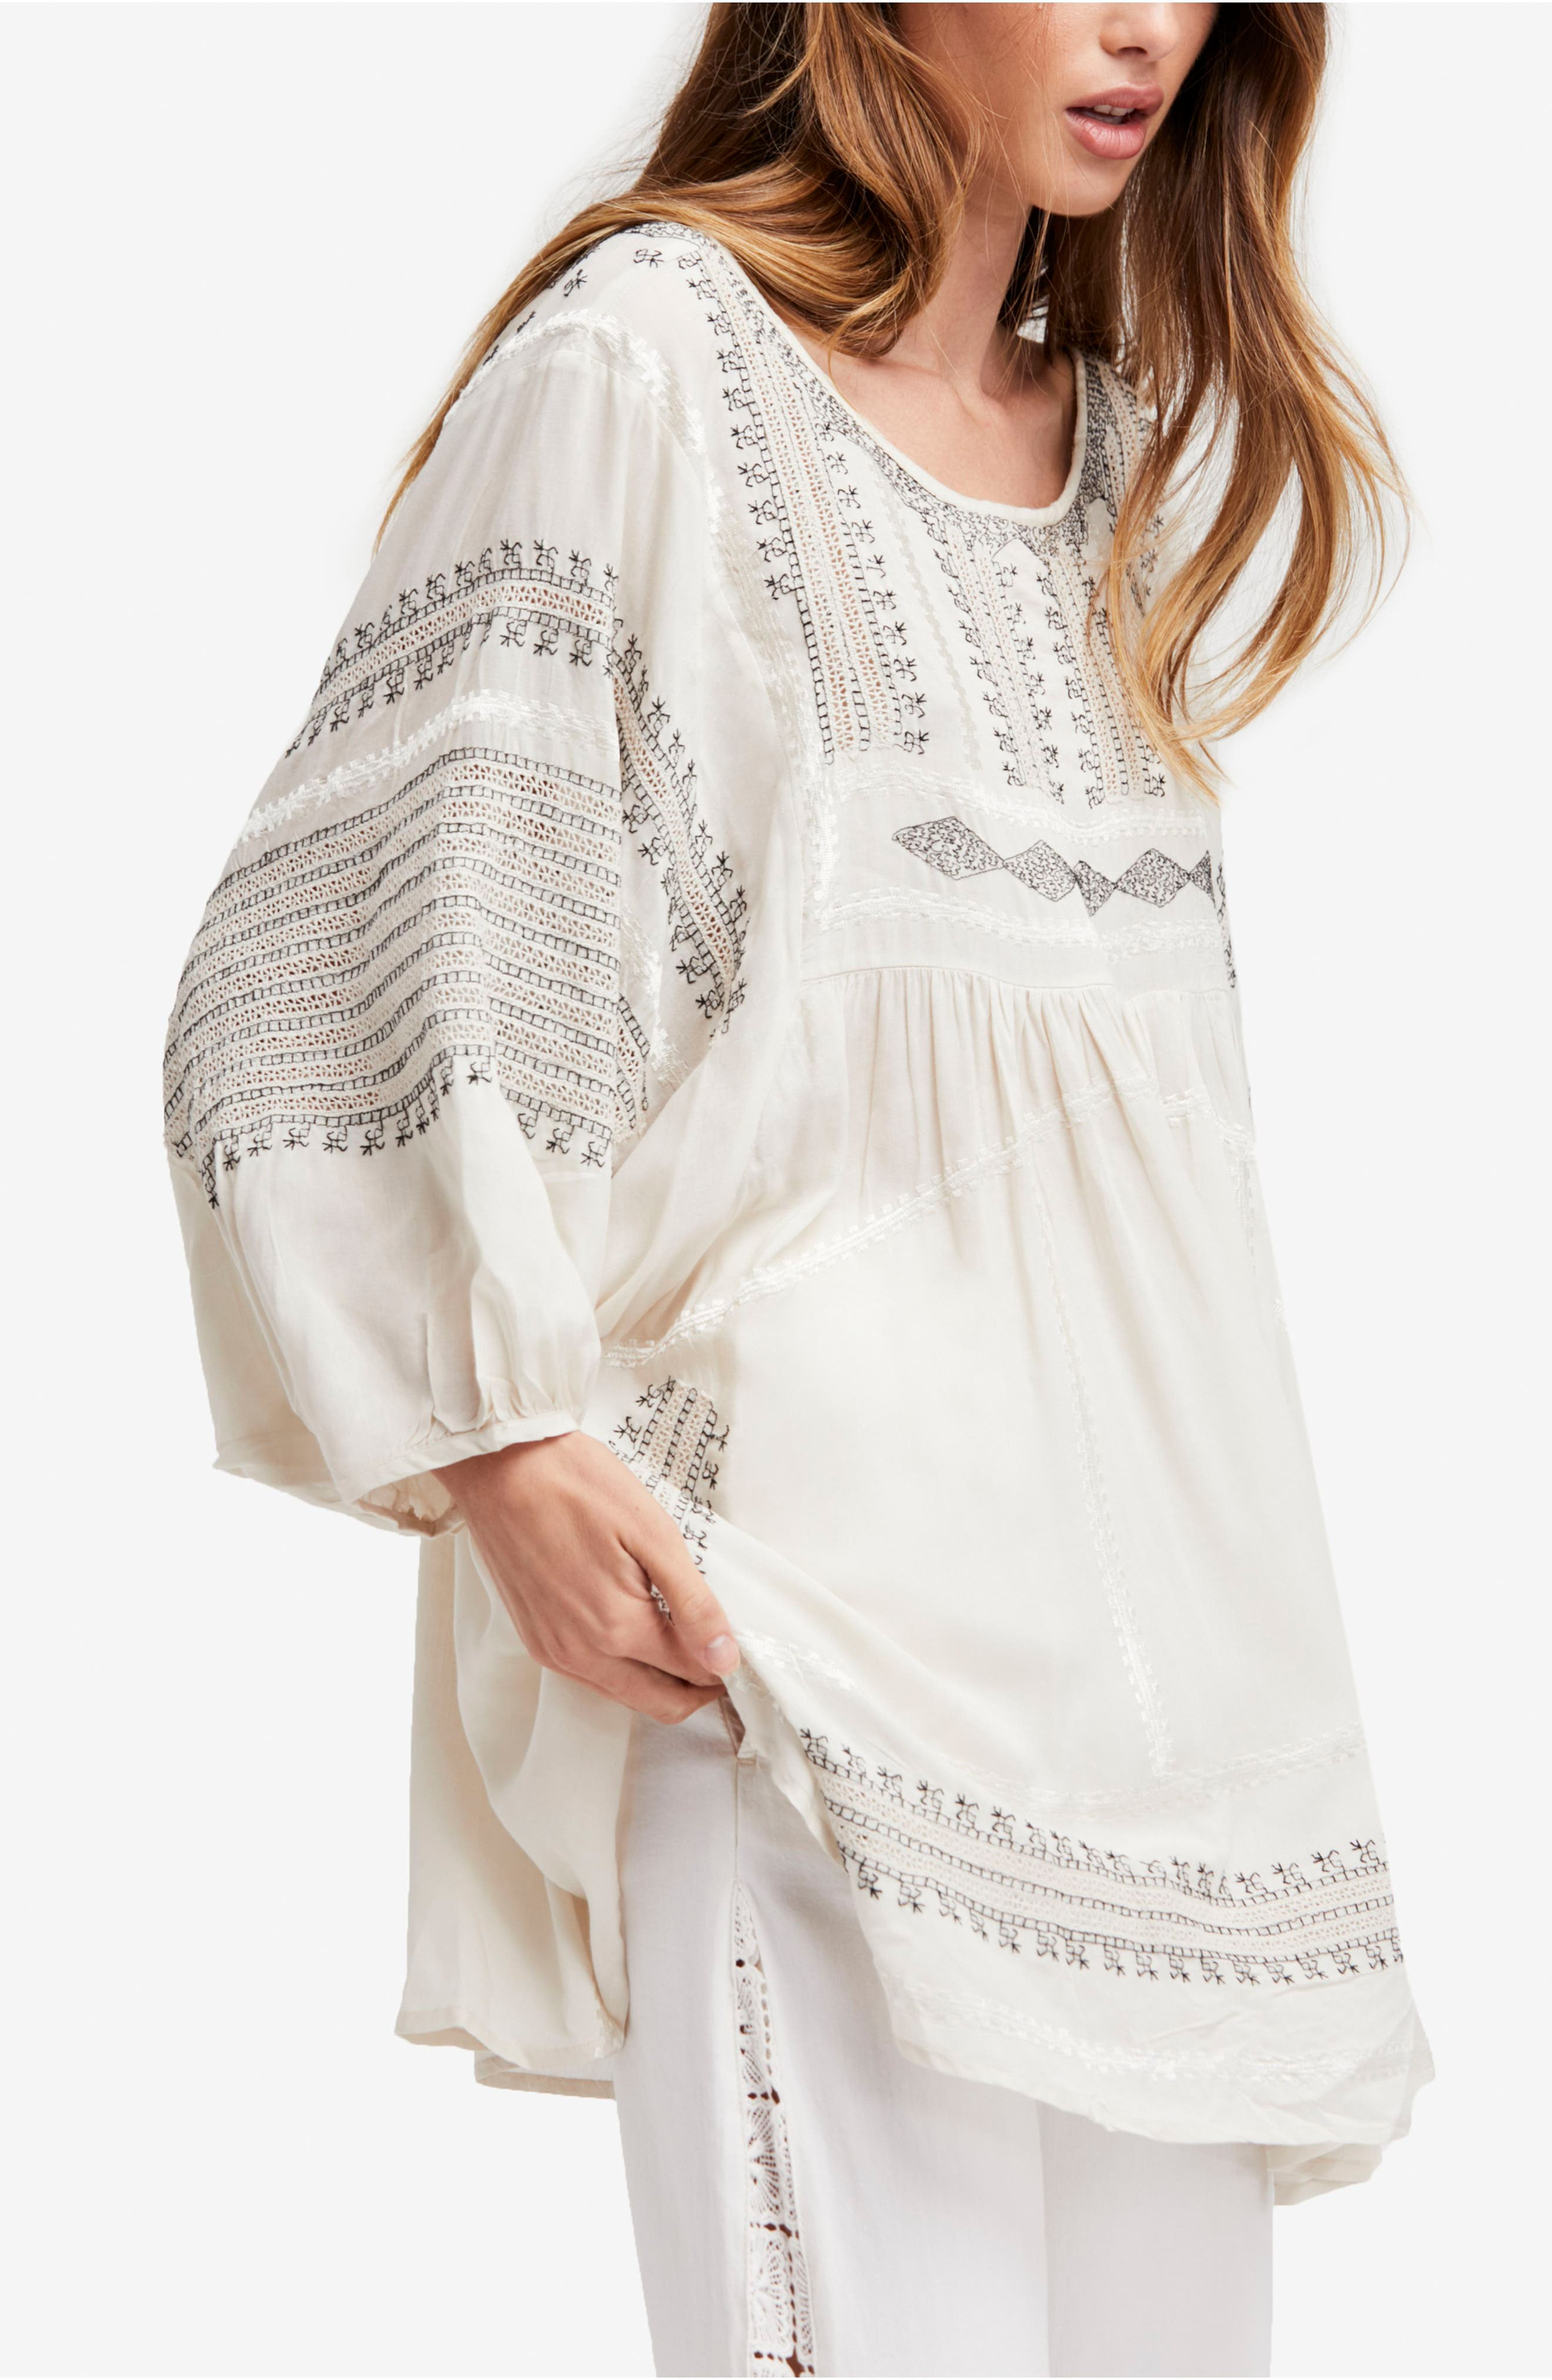 Wild One Embroidered Top,                             Main thumbnail 1, color,                             Ivory